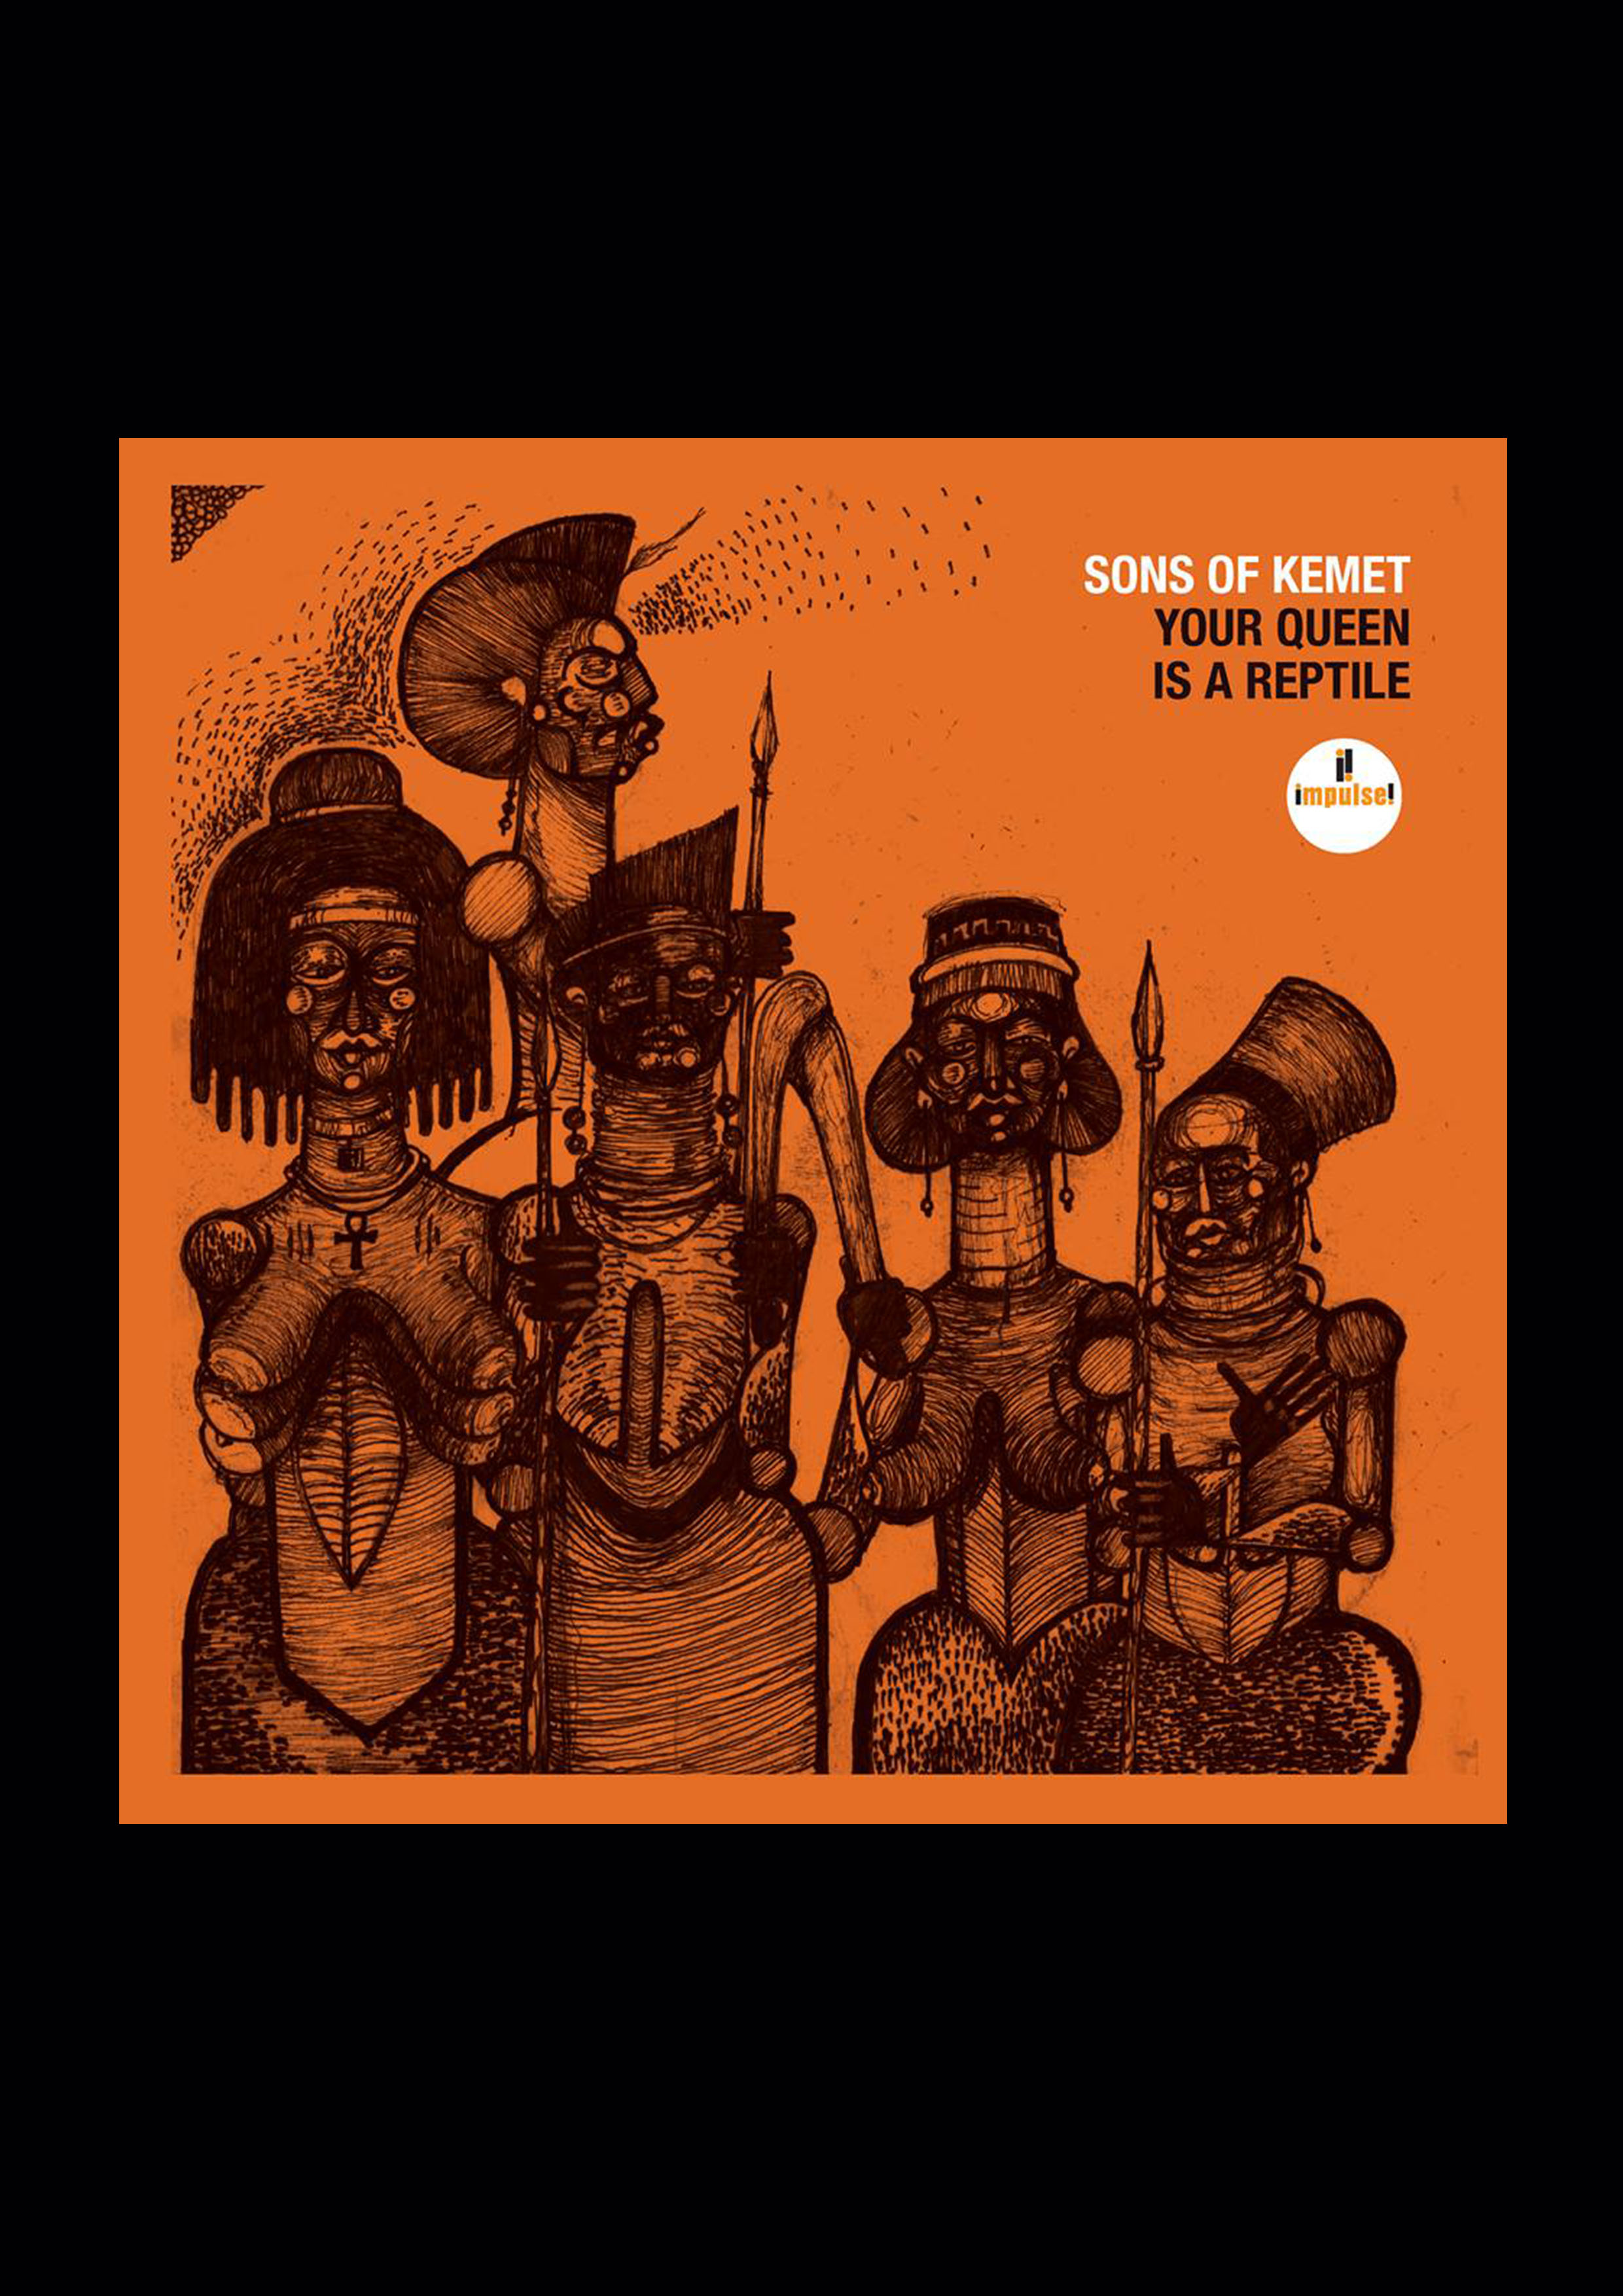 NEW ALBUM: Sons Of Kemet - Your Queen Is A Reptile - Diplomats of Sound